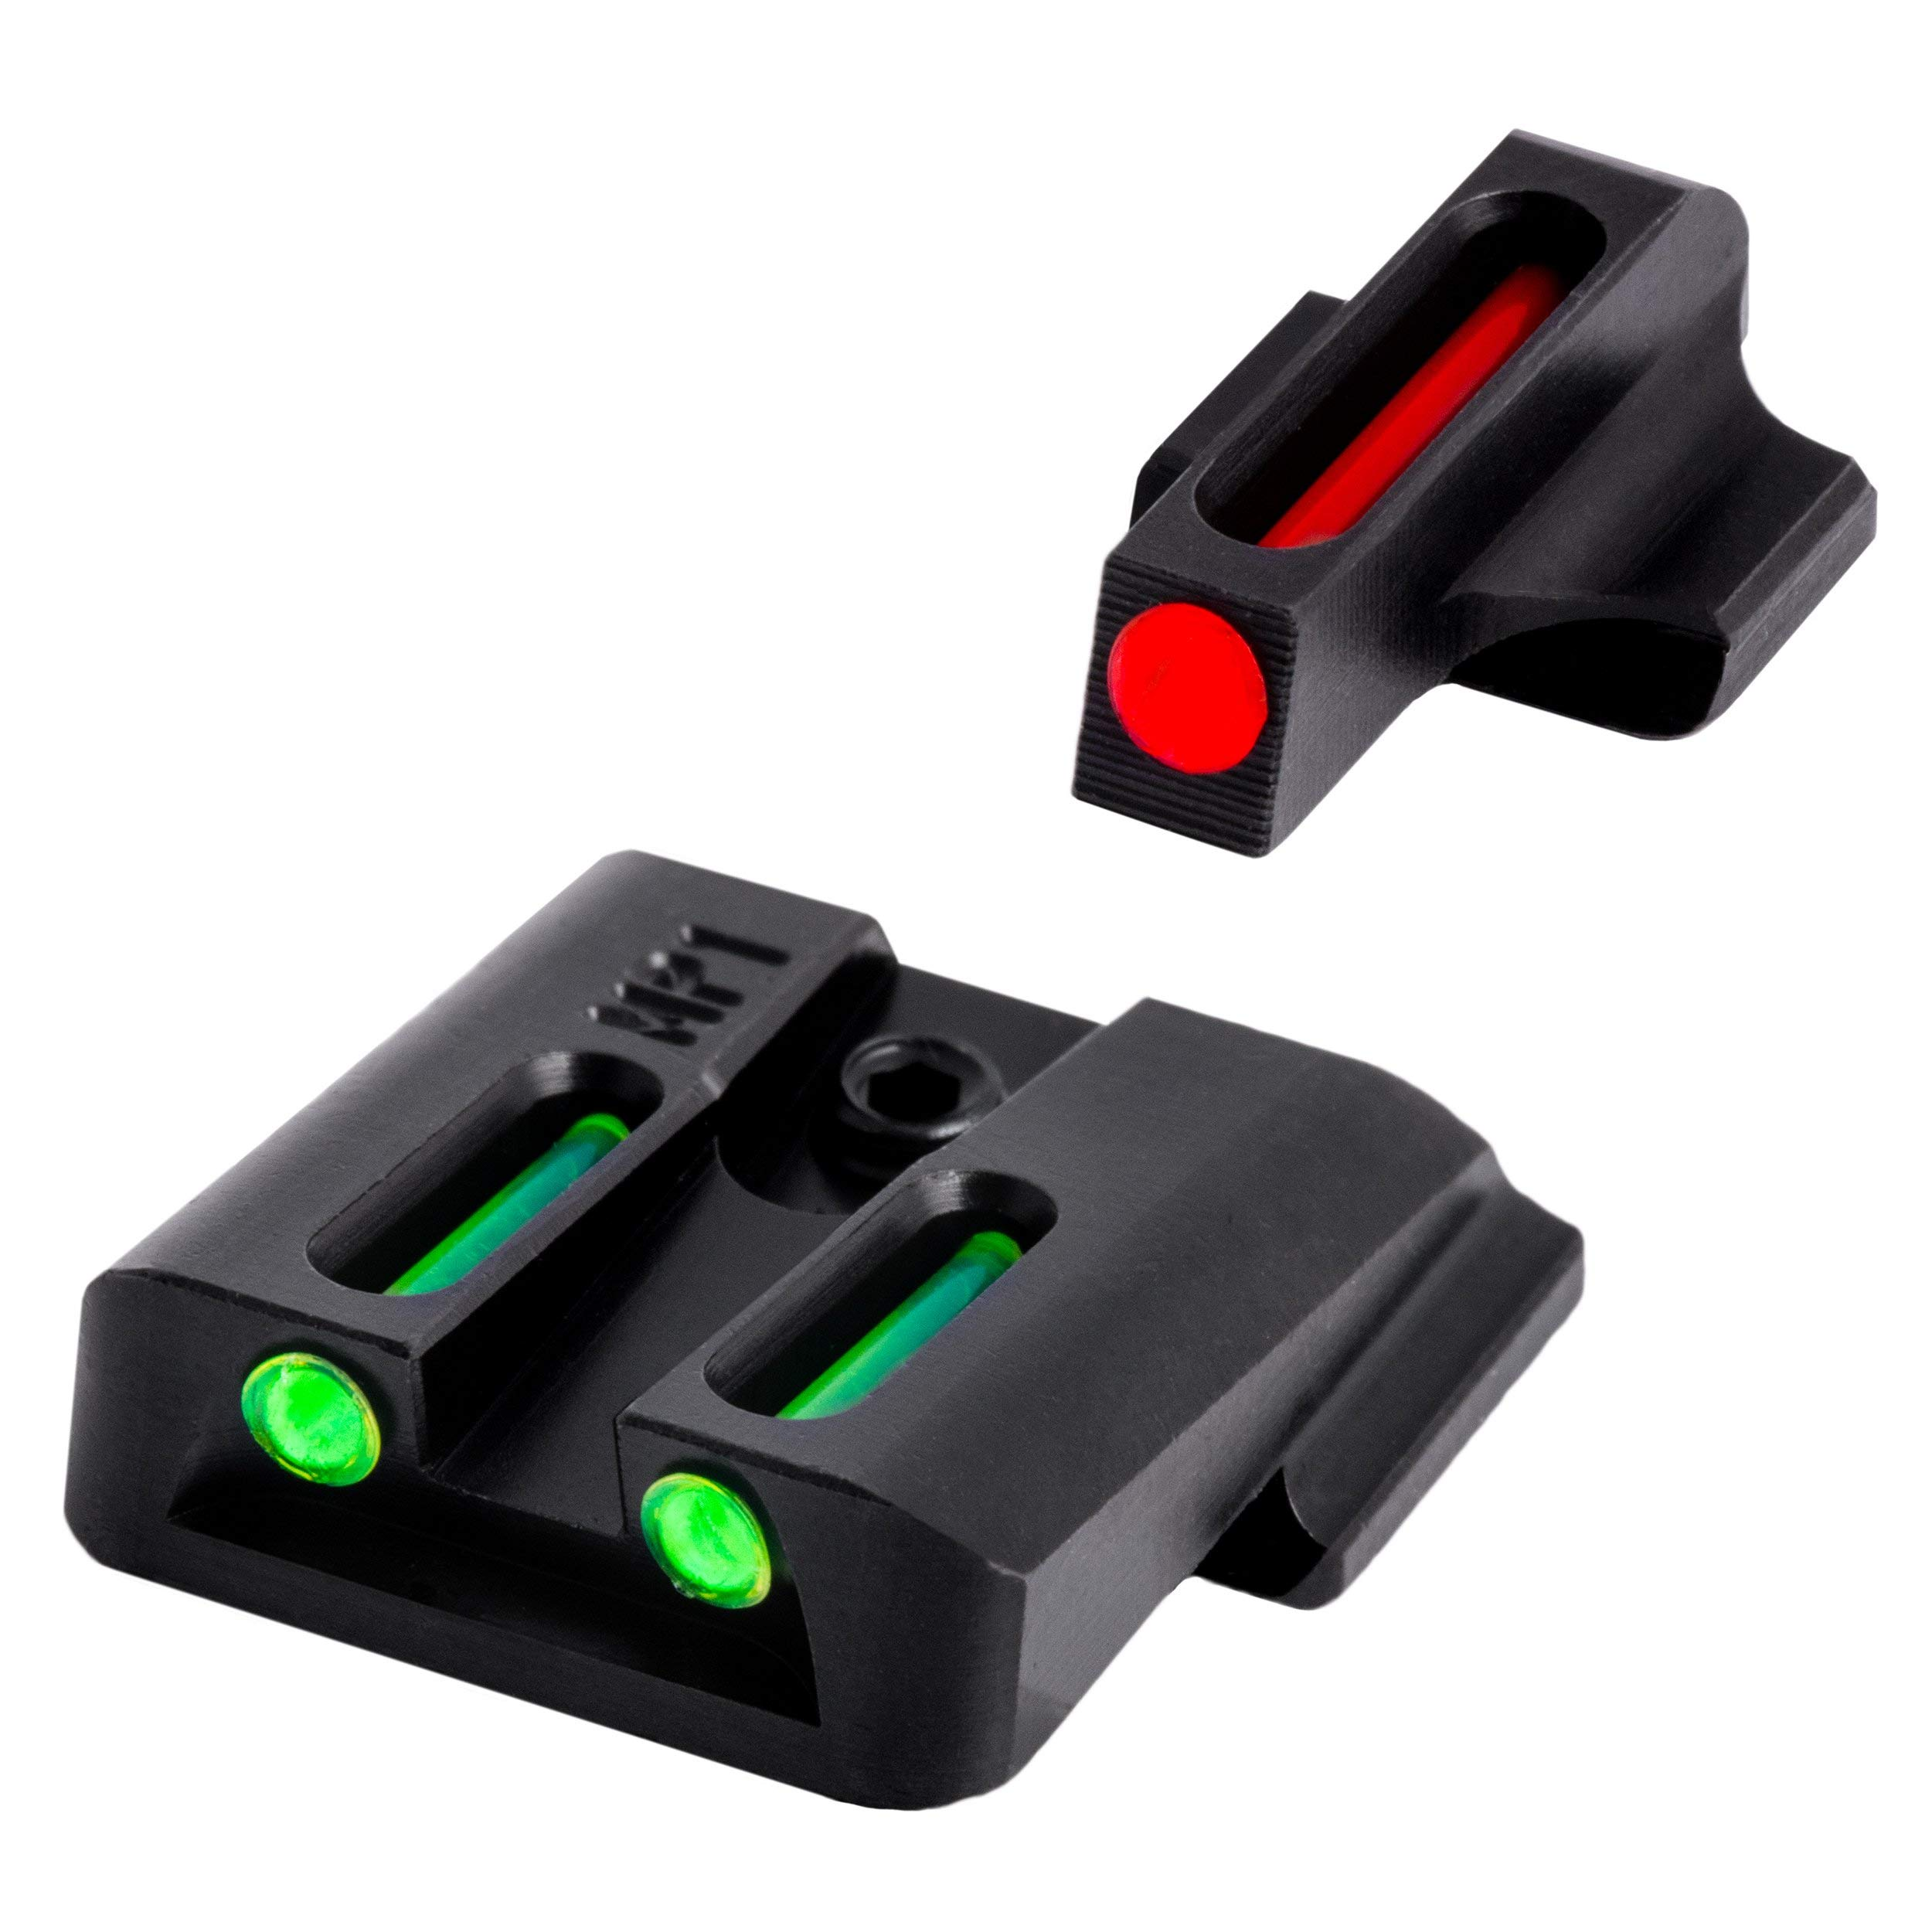 TRUGLO Fiber-Optic Front and Rear Handgun Sights (Including Shield and .22 Models, excluding .22 Compact, C.O.R.E. Models, and Shield 380 EZ), SD9 and SD40 ) (Renewed) by TRUGLO